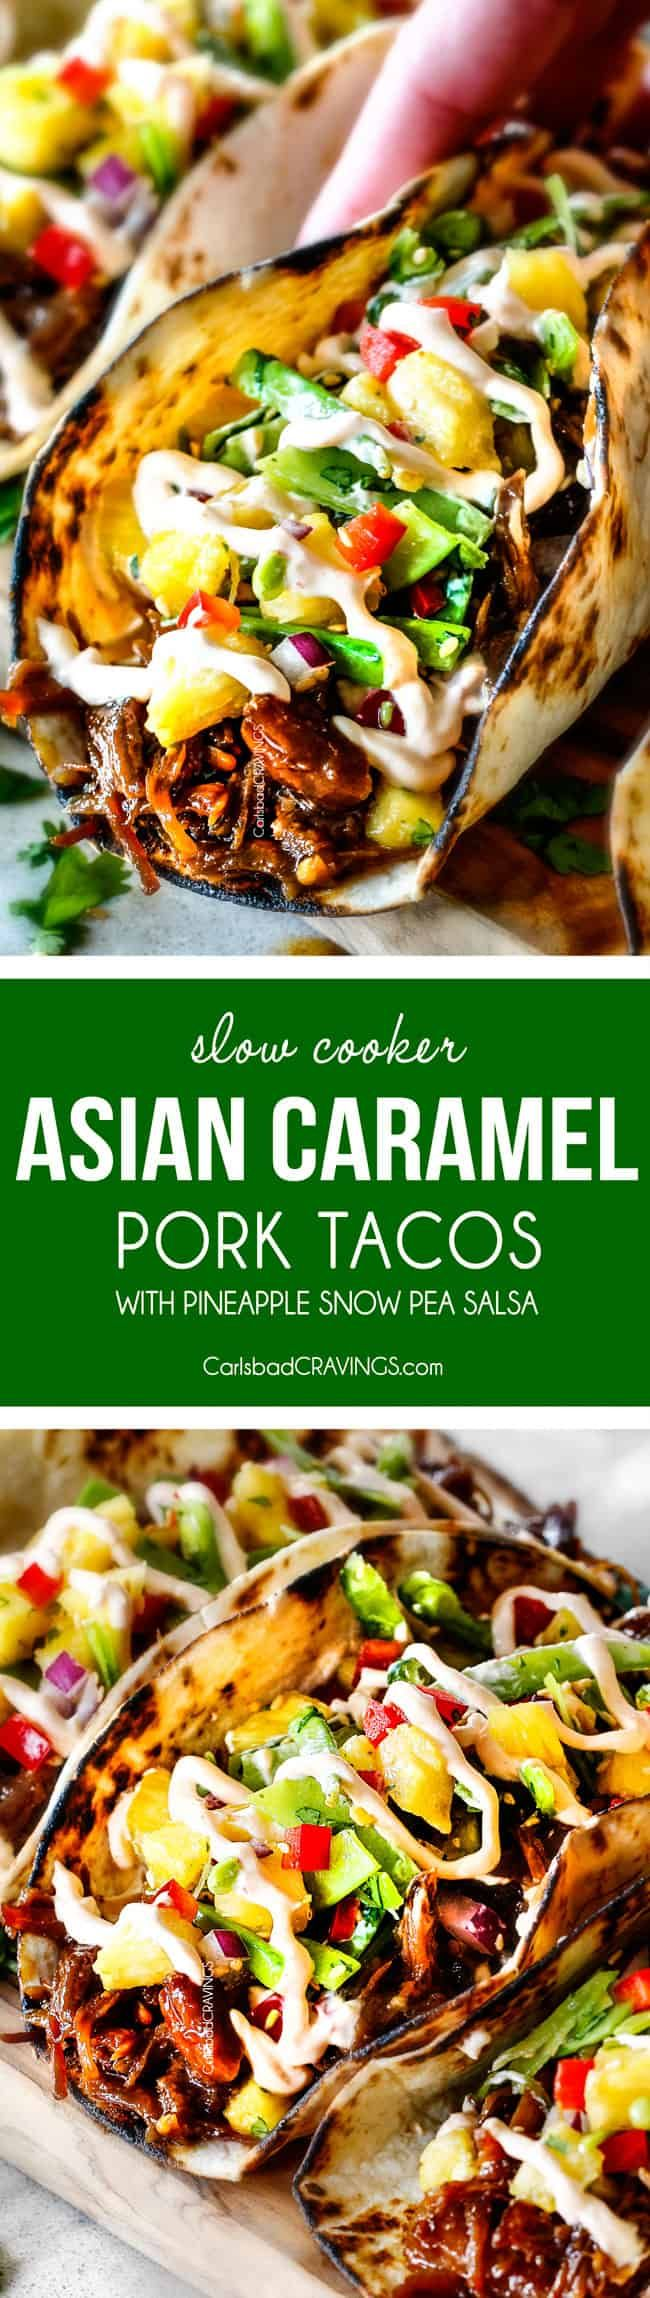 These crazy delicious Asian Pulled Pork Tacos are a symphony of flavors and textures and SO easy made in the slow cooker! They're stuffed with the most amazing juicy, tender Asian Caramel Pulled Pork piled with fresh and tangy Pineapple Snow Pea Salsa and drizzled with luxurious Sriracha Crema. via @carlsbadcraving